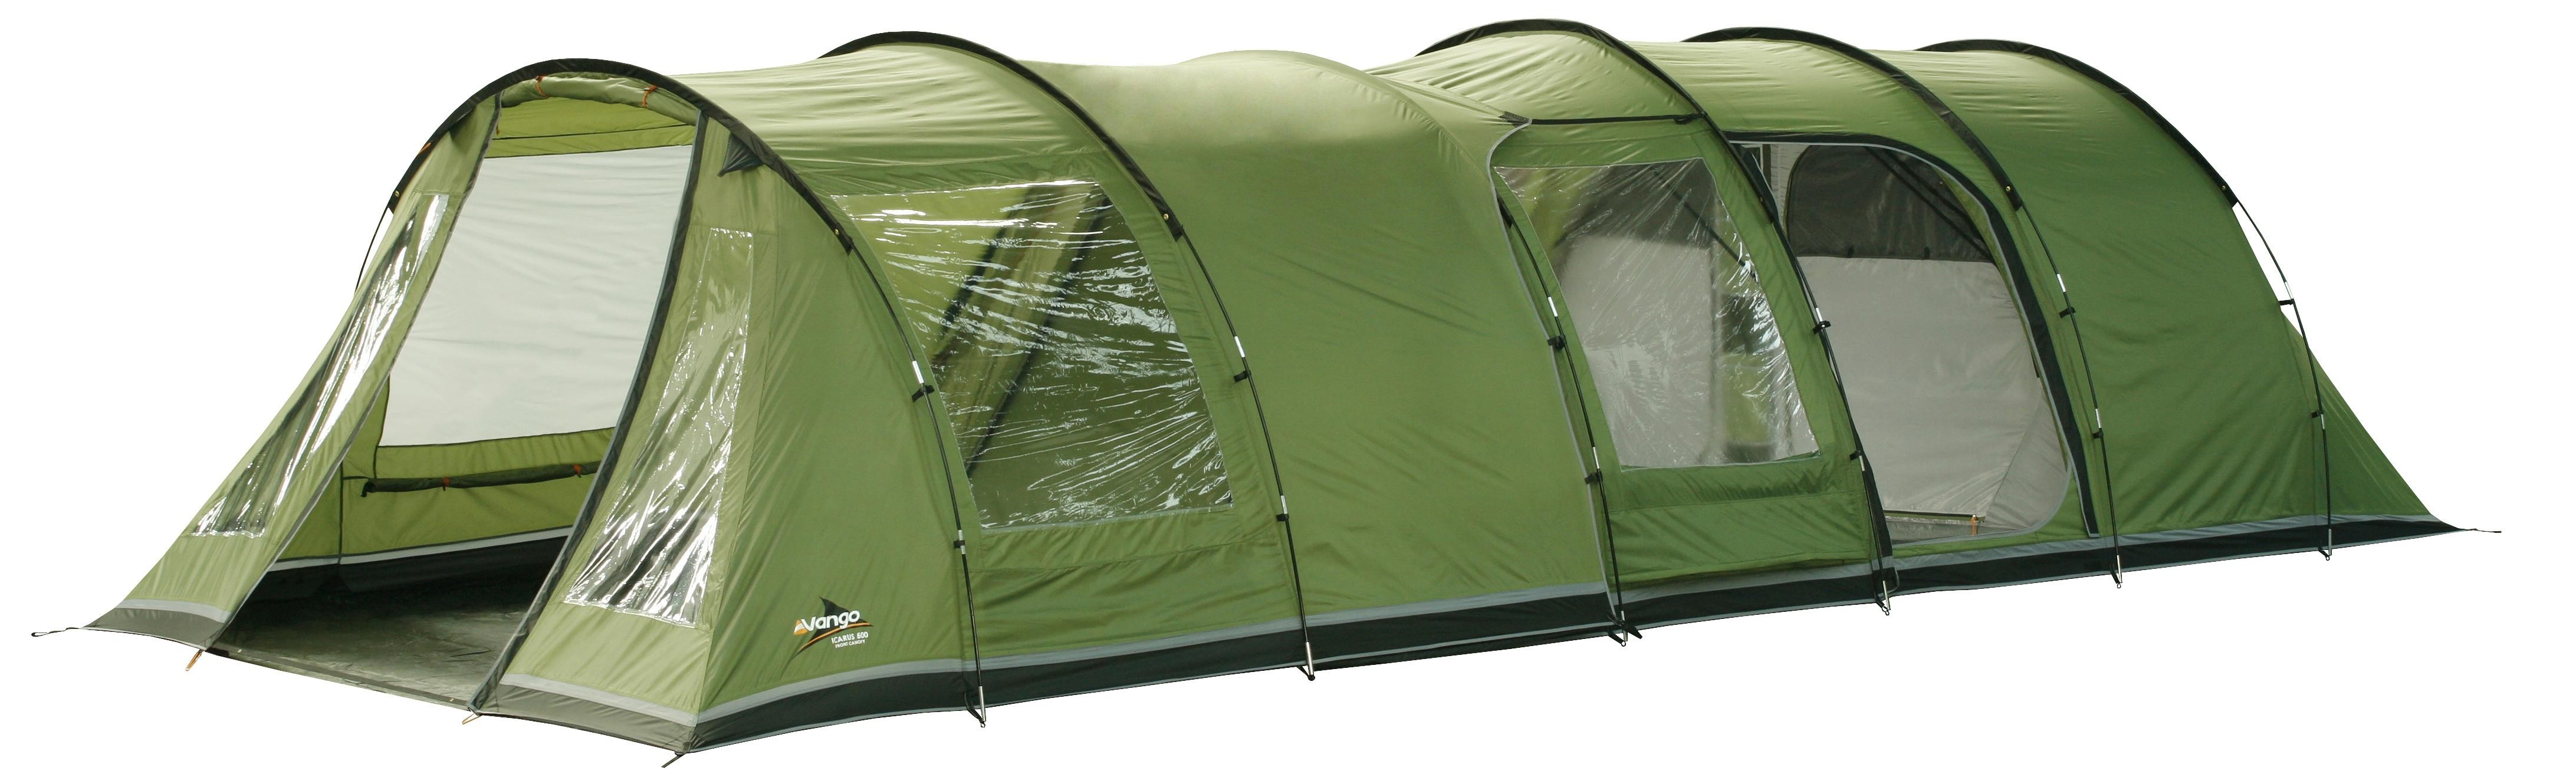 sc 1 st  Outdoor Megastore & Vango Icarus 600 Front Enclosed Canopy